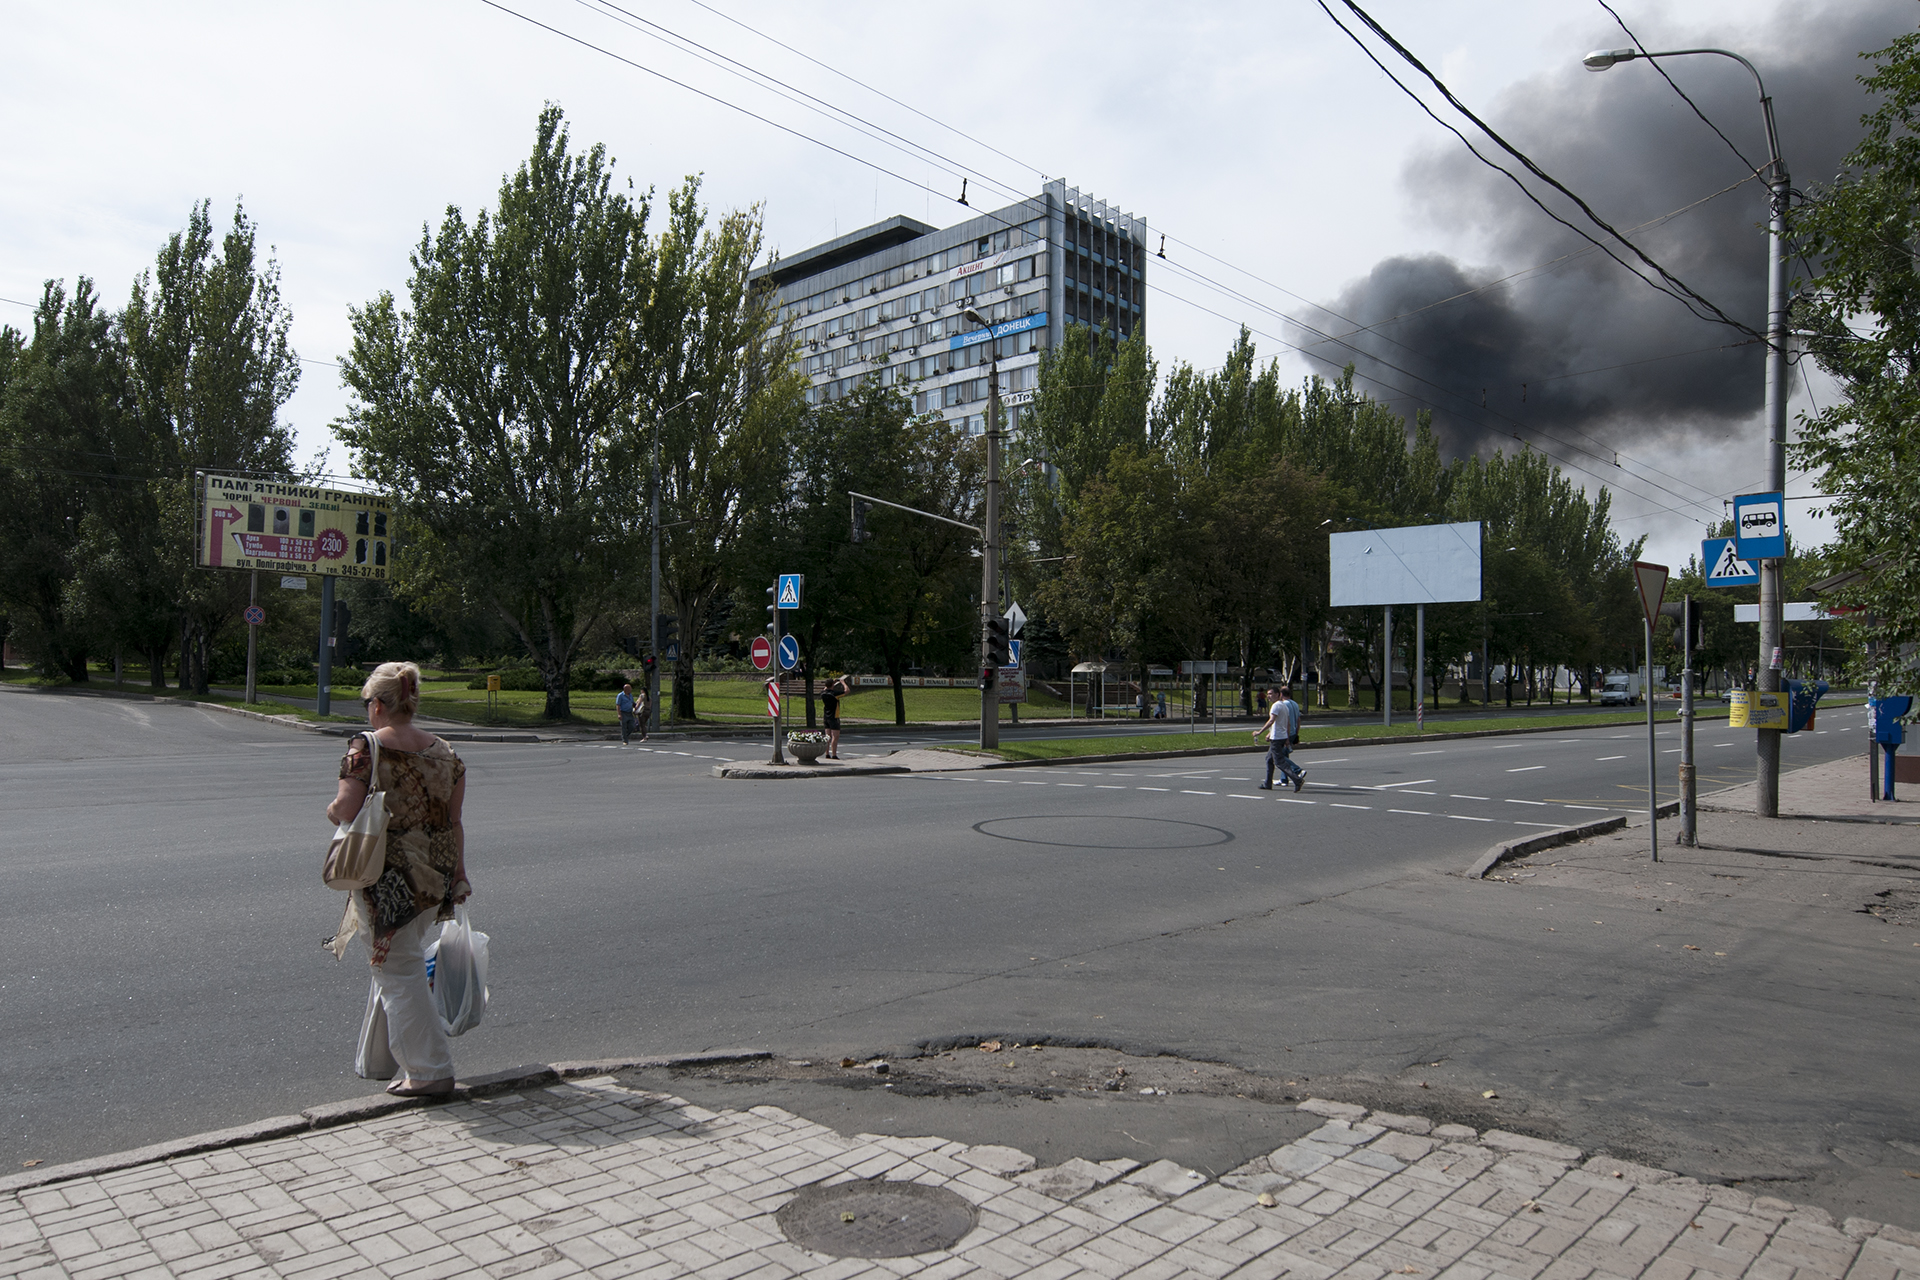 Donetsk inhabitants going back to their days after aritlery hit the city